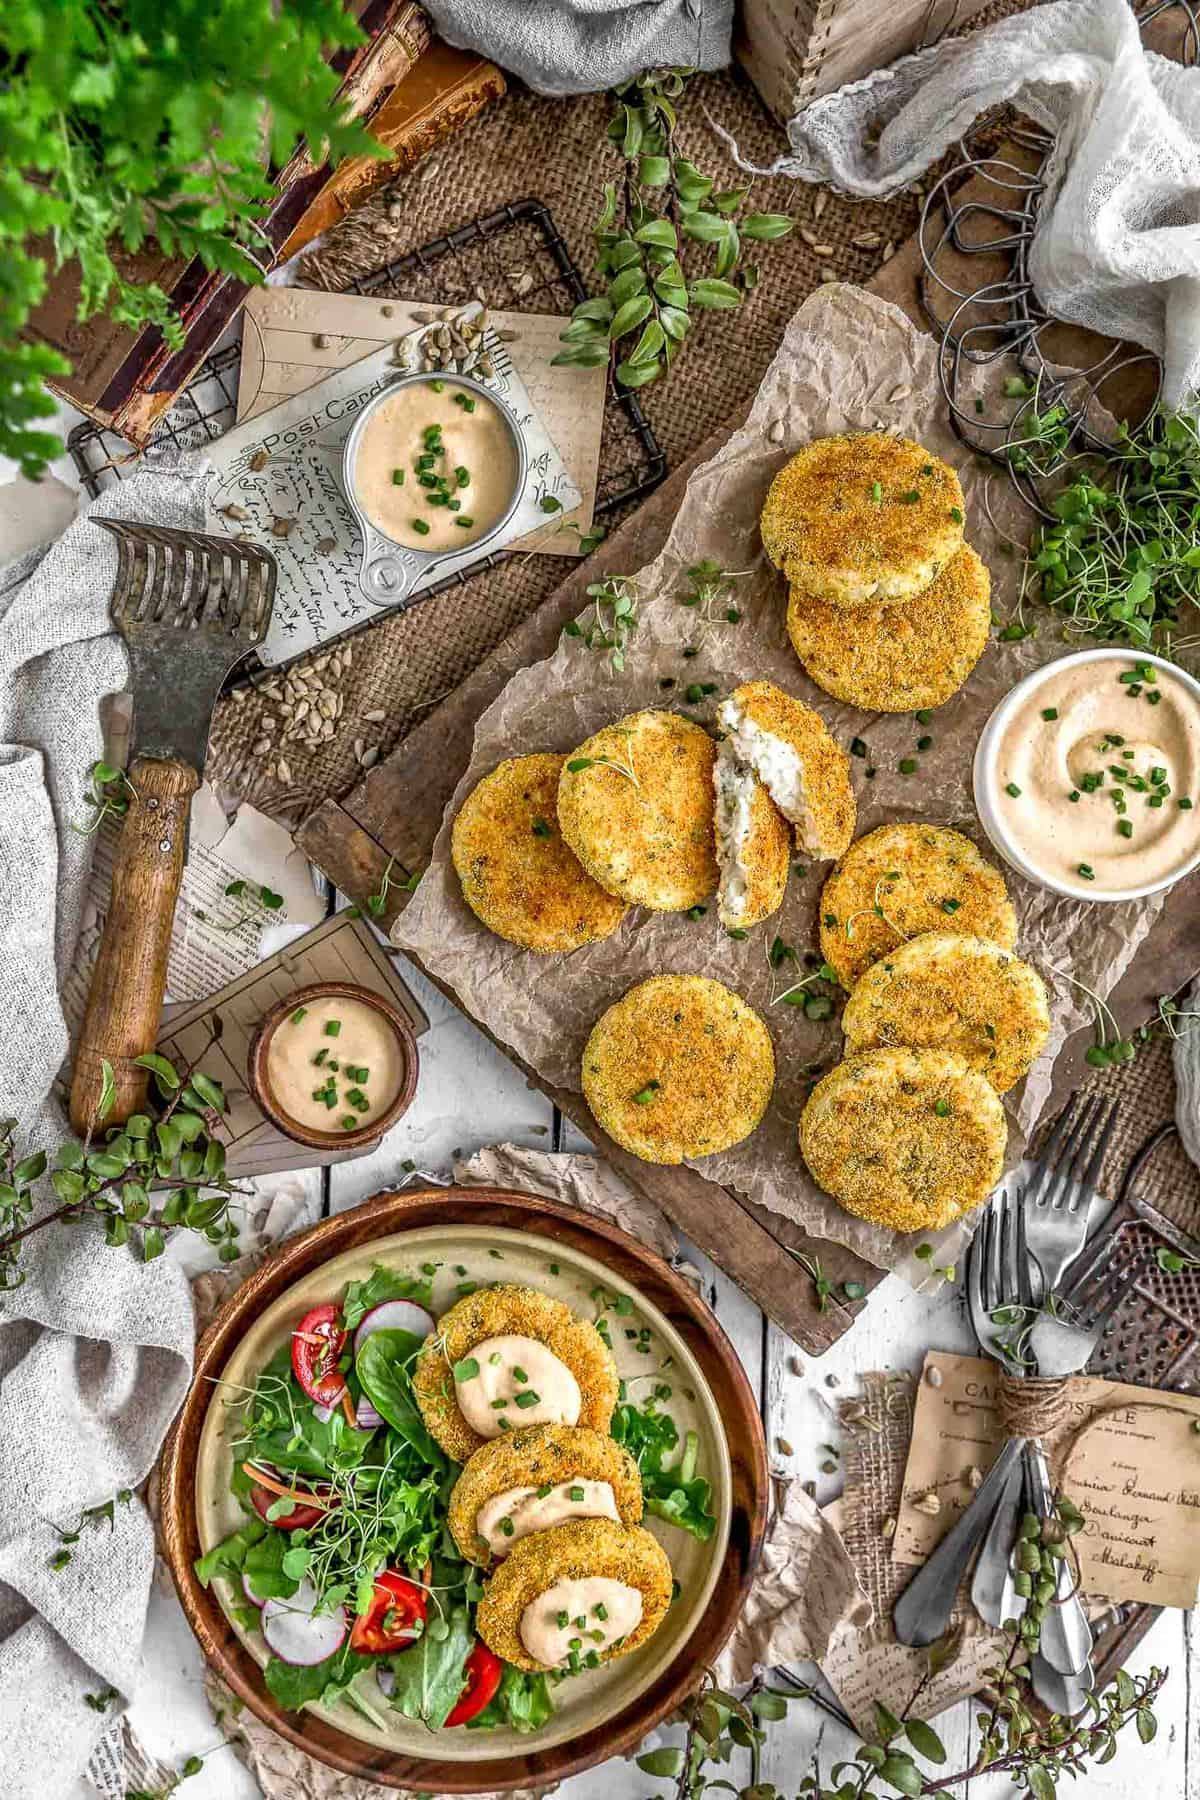 Tablescape of Healthy Mashed Potato Patties with Tangy Garlic Aioli